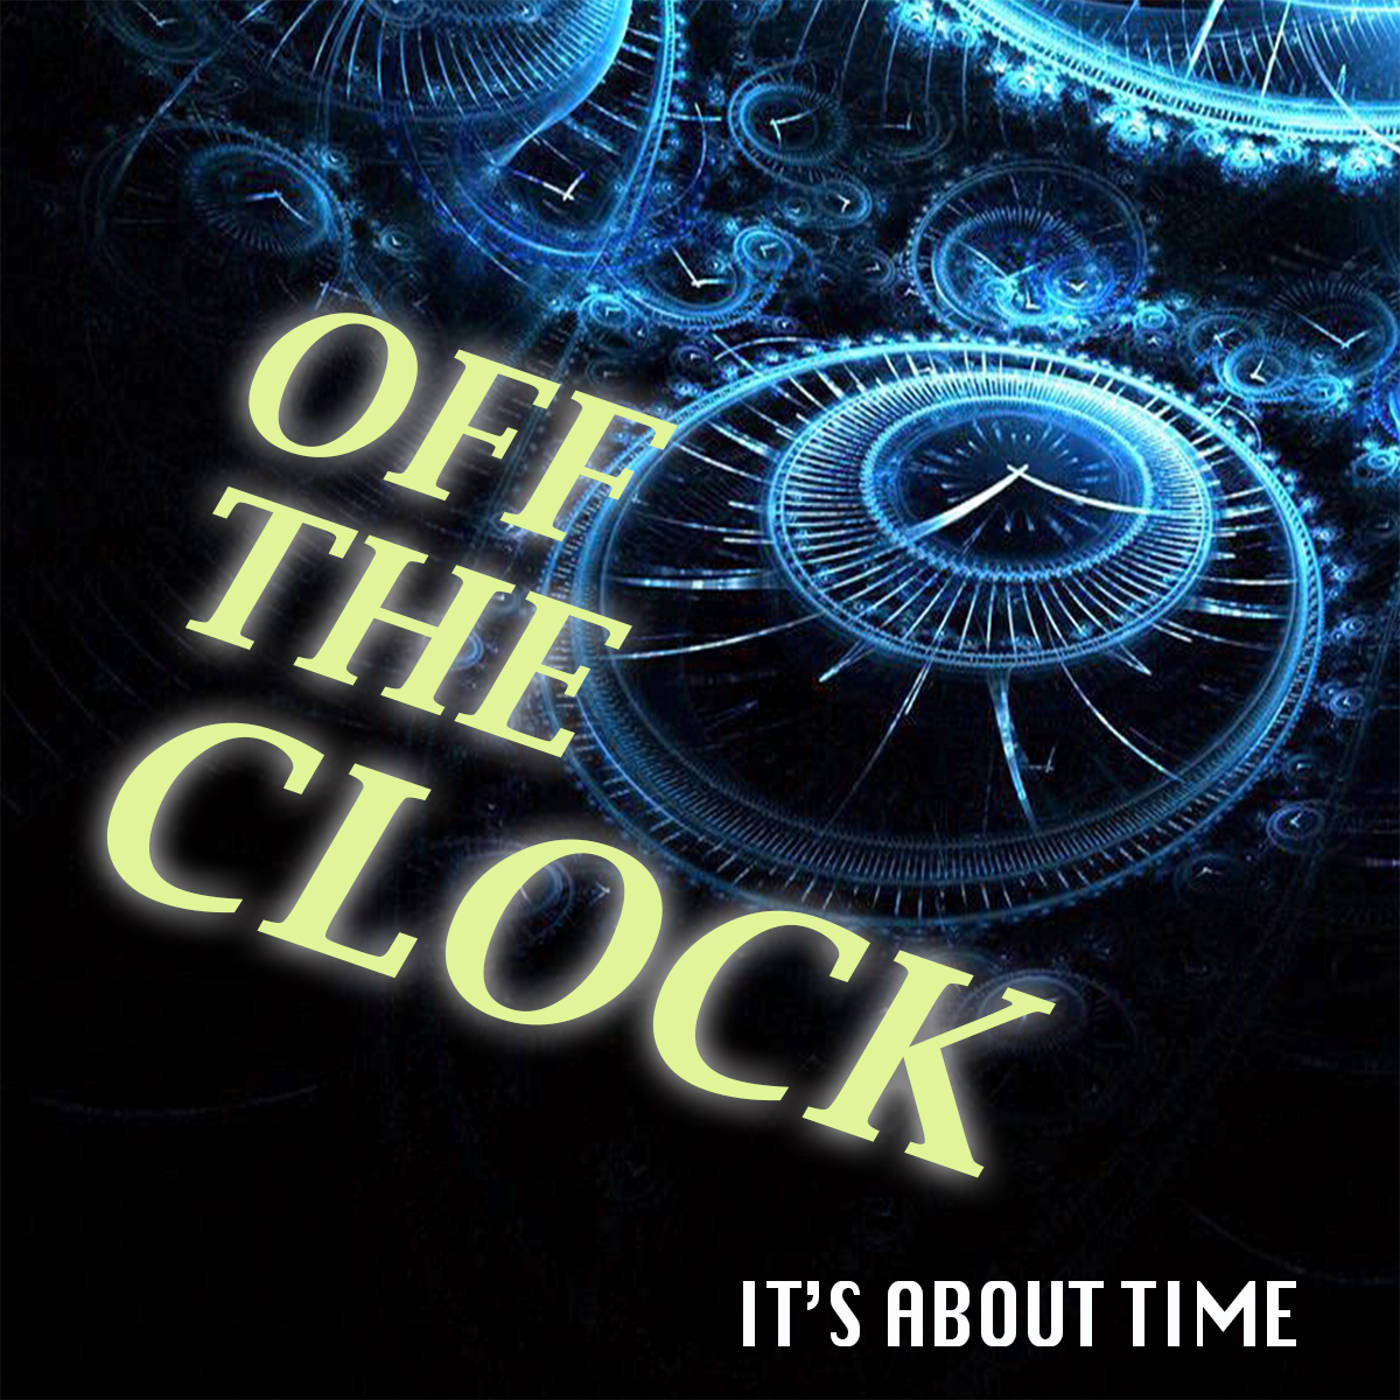 S02E02 - Off the Clock - Discover the key to time travel in this comedy adventure